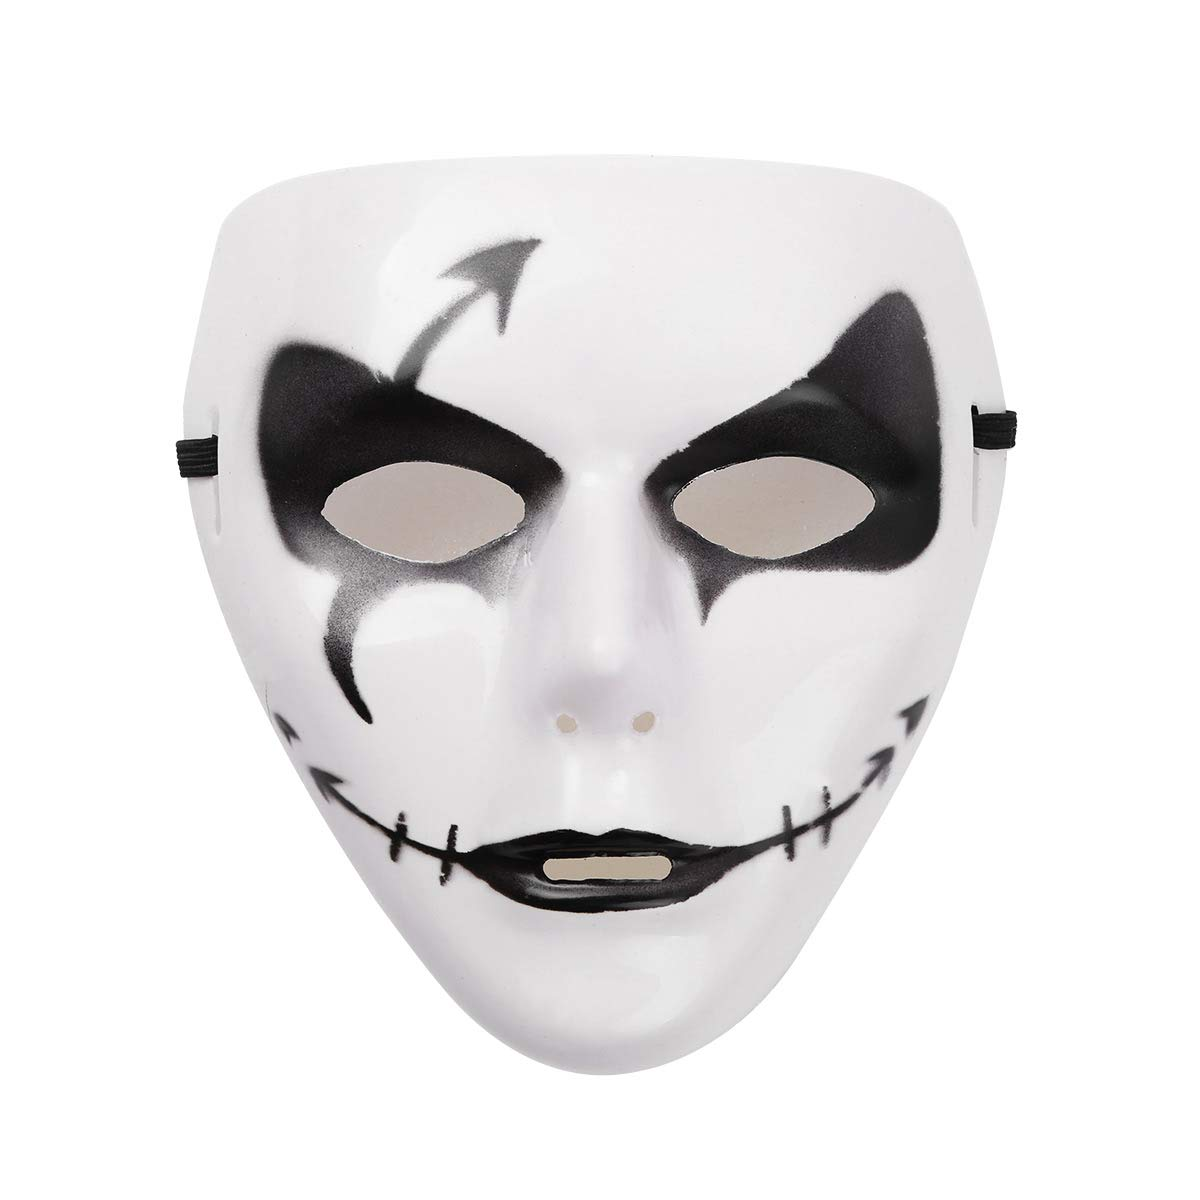 YiZYiF Halloween Mask Full Face Scary Ghost Mask Cosplay Costume for Masquerades Carnival Party Dancing Performance White&Black One Size